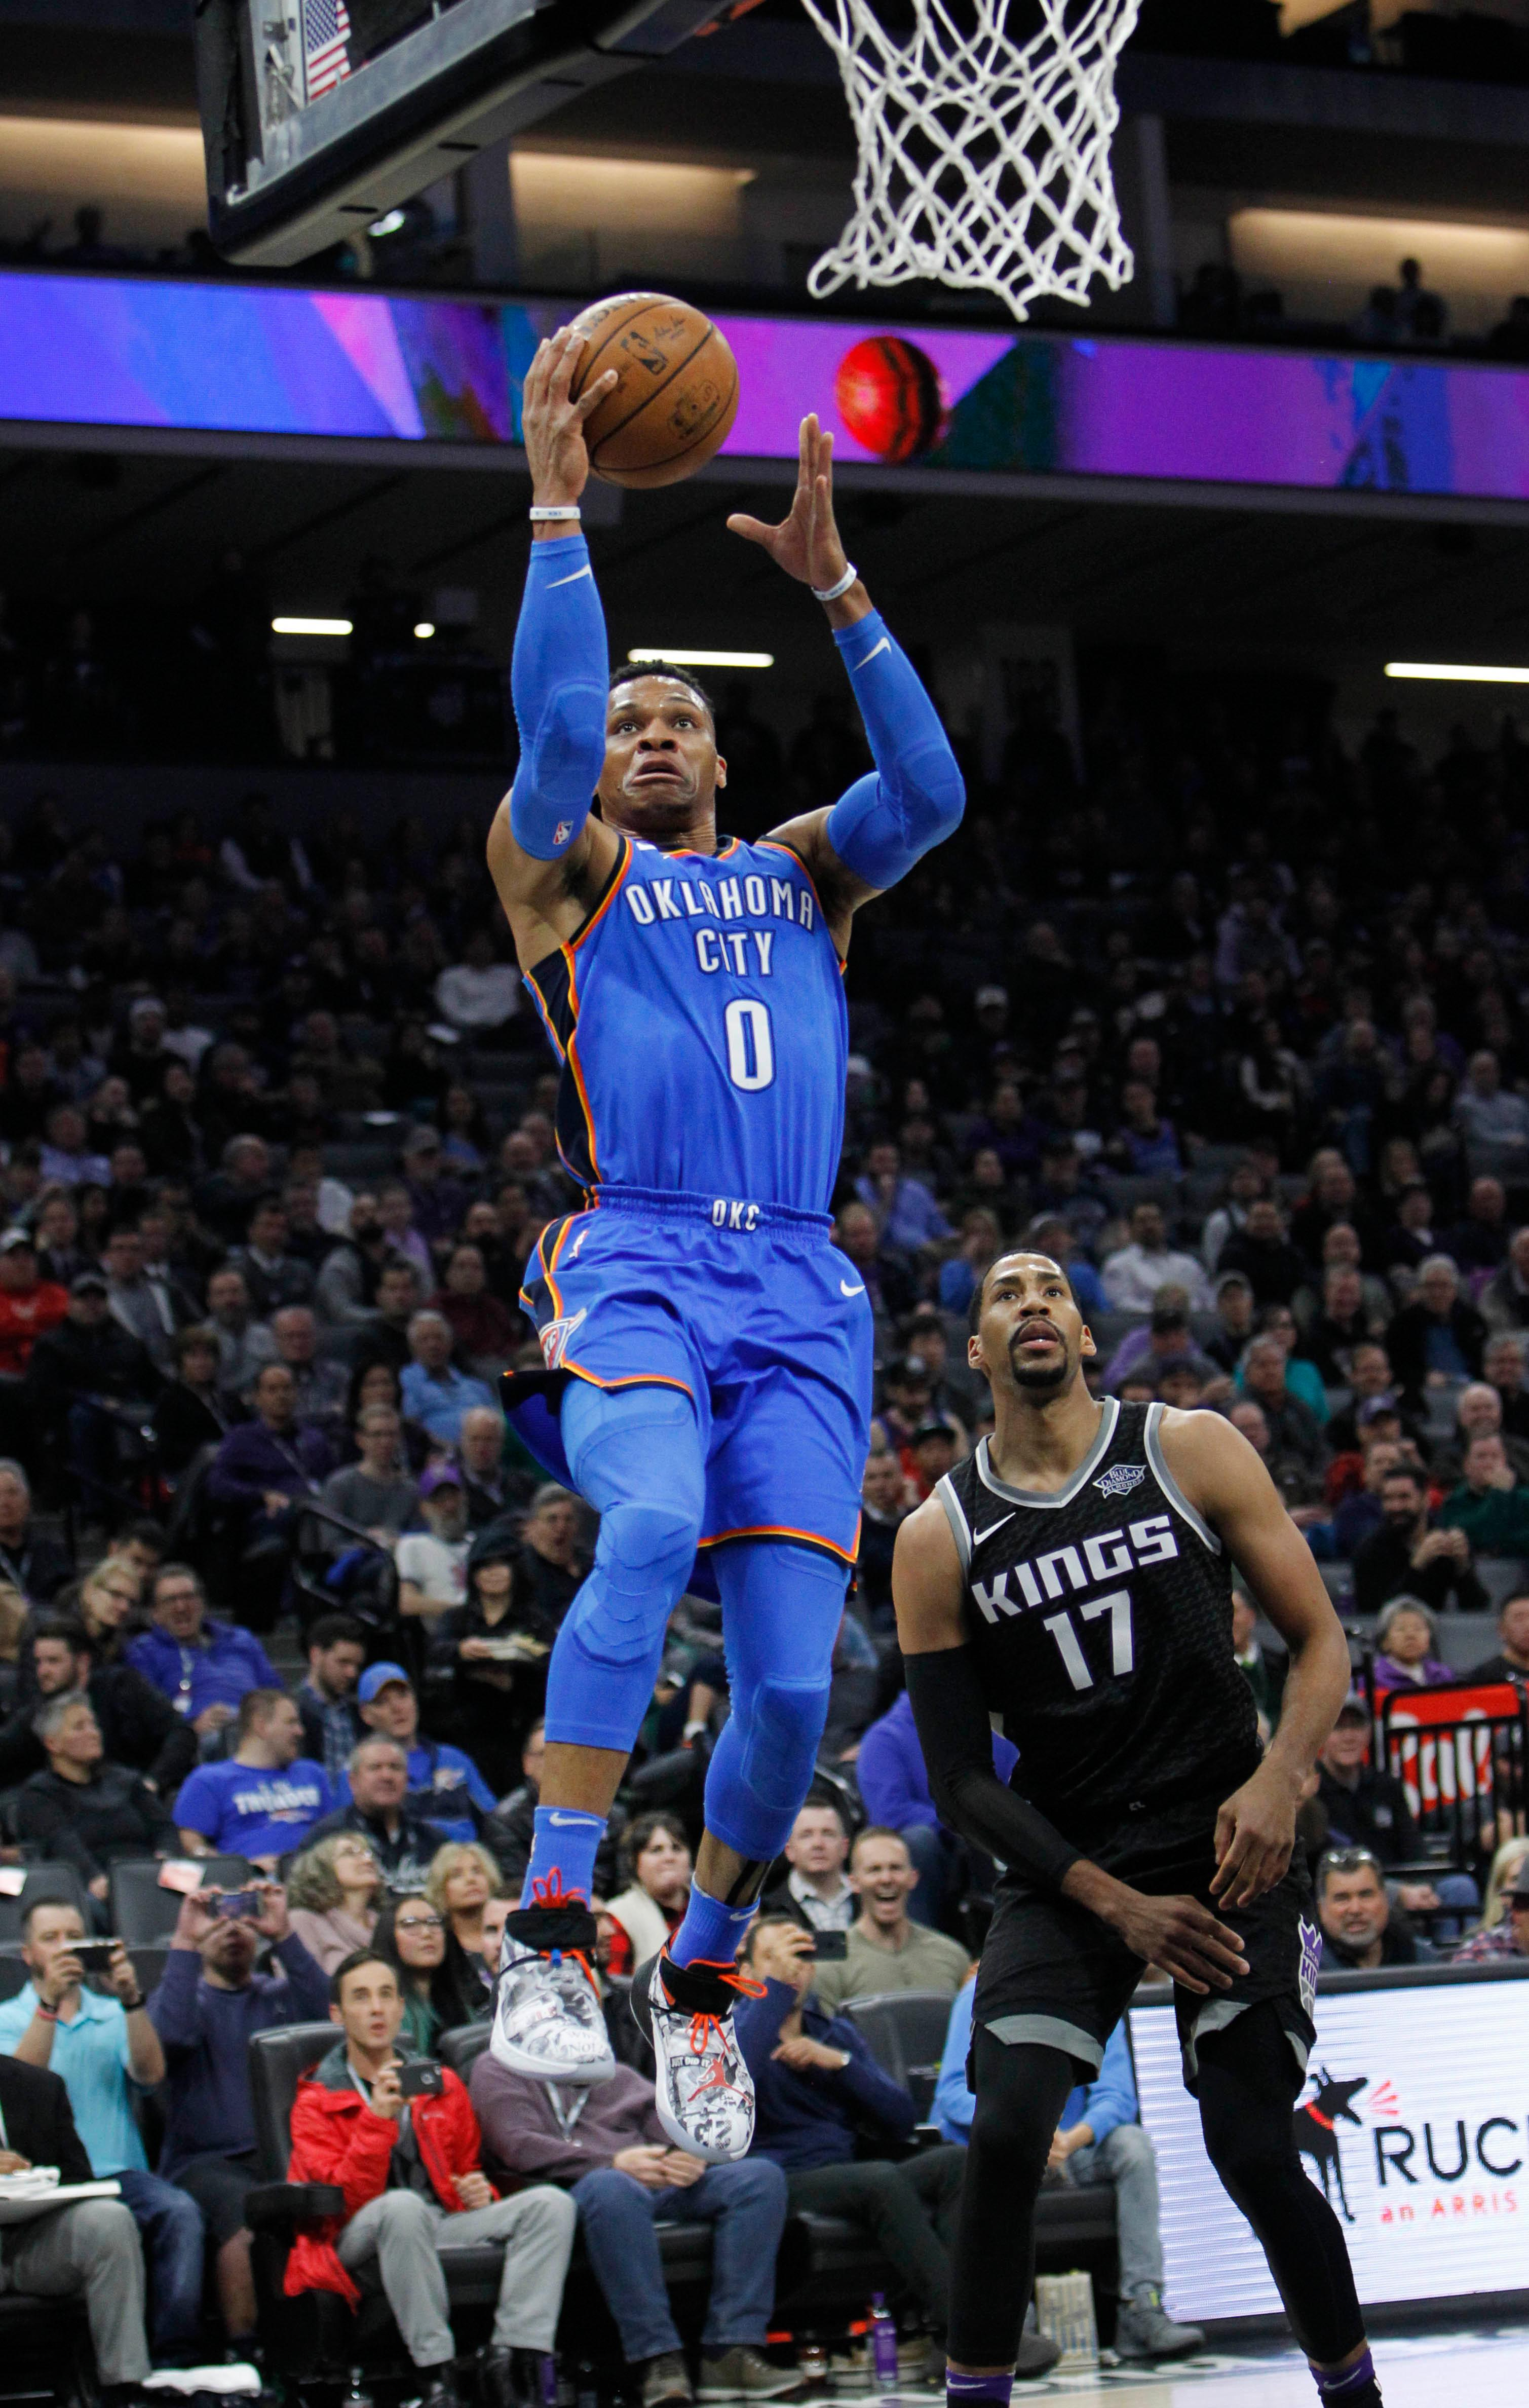 Oklahoma City Thunder guard Russell Westbrook (0) drives to the basket past Sacramento Kings guard Garrett Temple (17) during the first half of an NBA basketball game in Sacramento, Calif., Thursday, Feb. 22, 2018. (AP Photo/Steve Yeater)